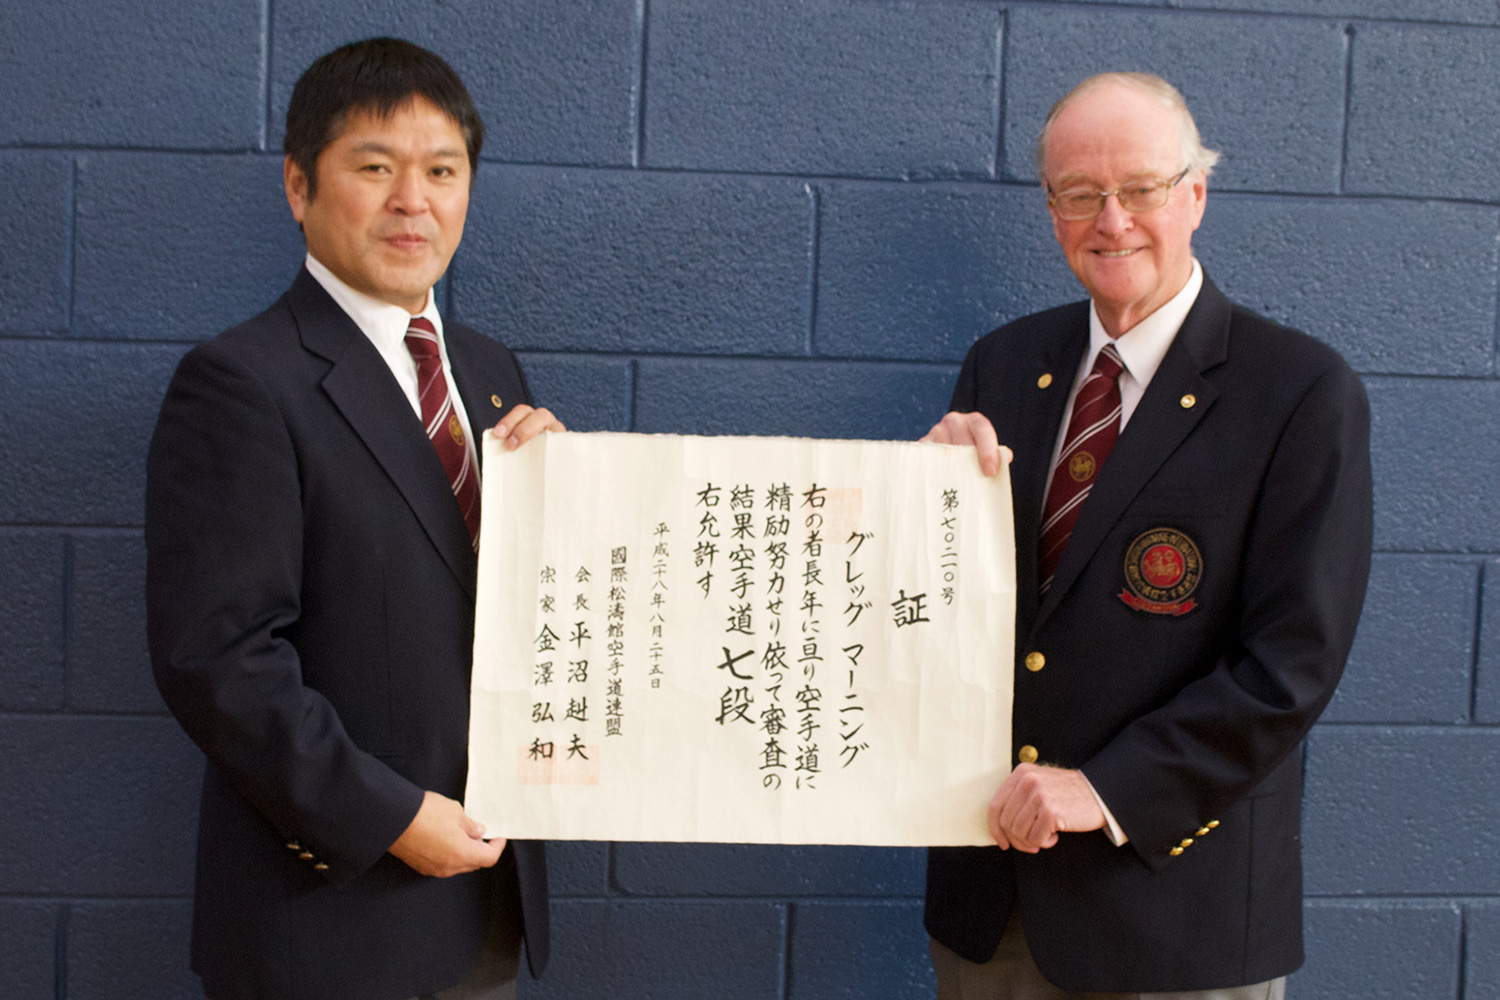 Sensei Greg Manning receives Nana-Dan 7th Dan Black Belt from Shuseki Shihan Manabu Murakami on behalf of Soke Hirokazu Kanazawa